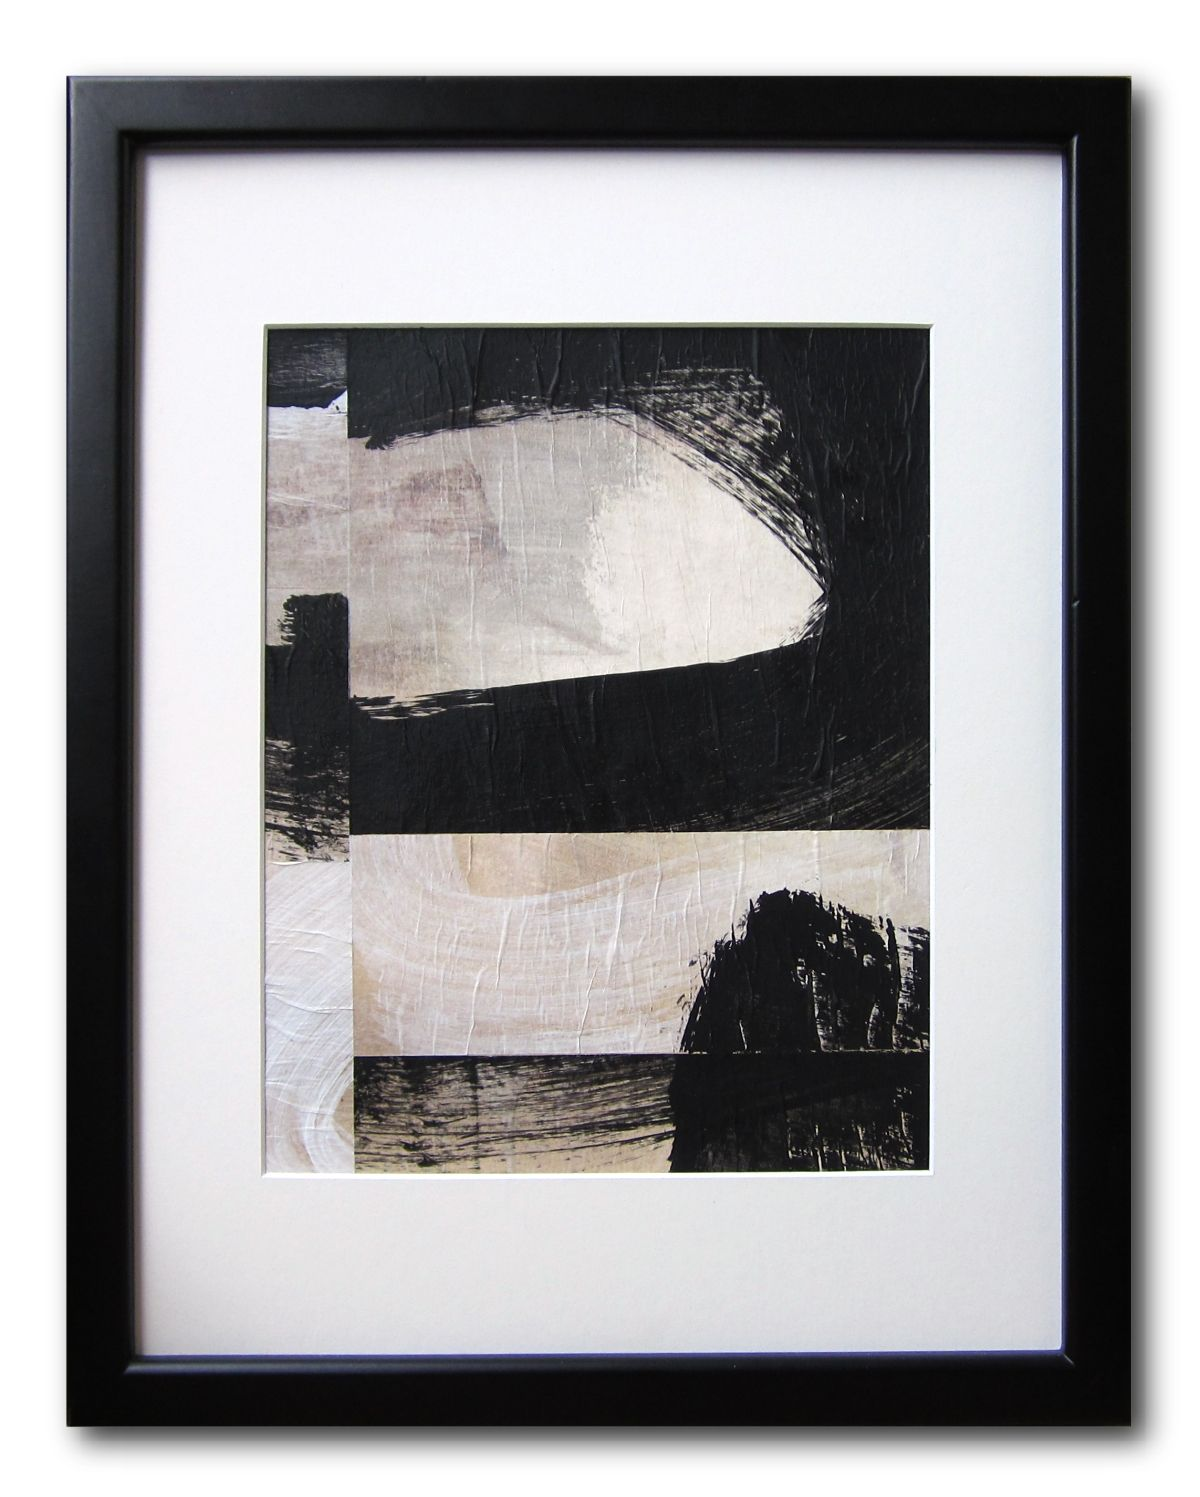 "Black and White / 8"" x 10"" / Collage / Original Abstract Painting / By Edmond Lacoste    https://www.etsy.com/listing/103385508/black-and-white-8-x-10-collage-original"